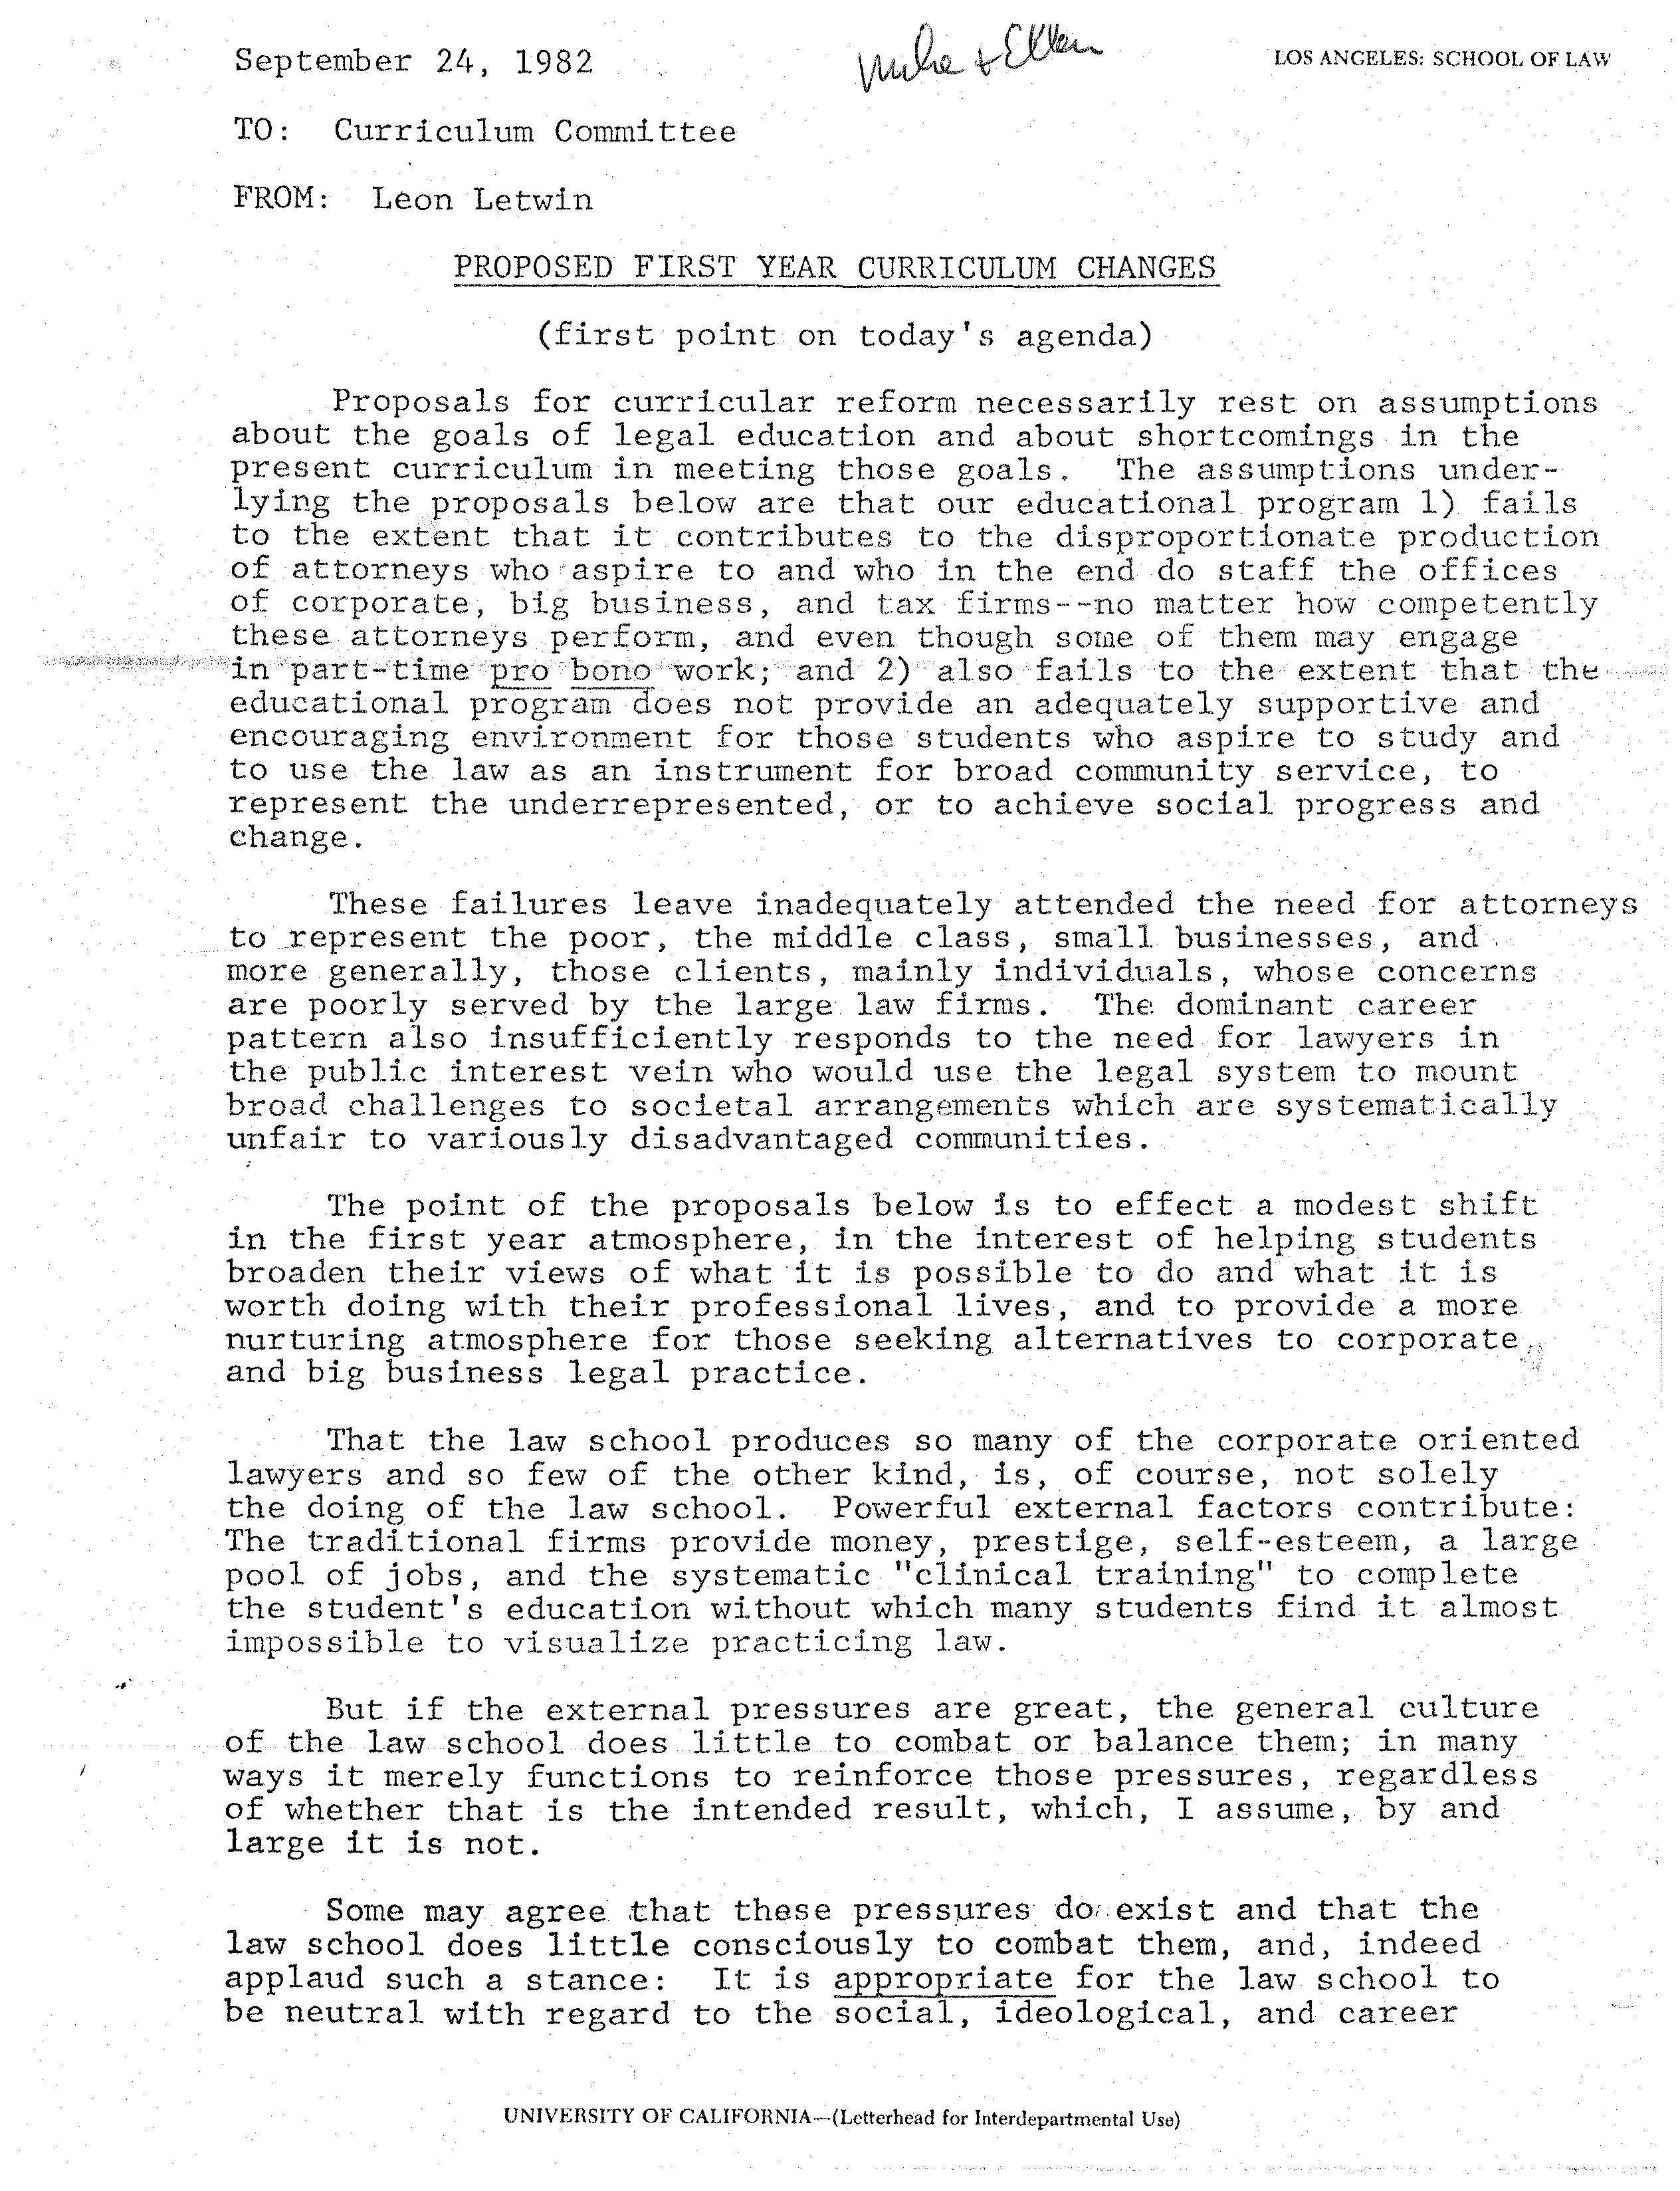 1982 09 24: Proposed First Year Curriculum Changes (UCLA Law